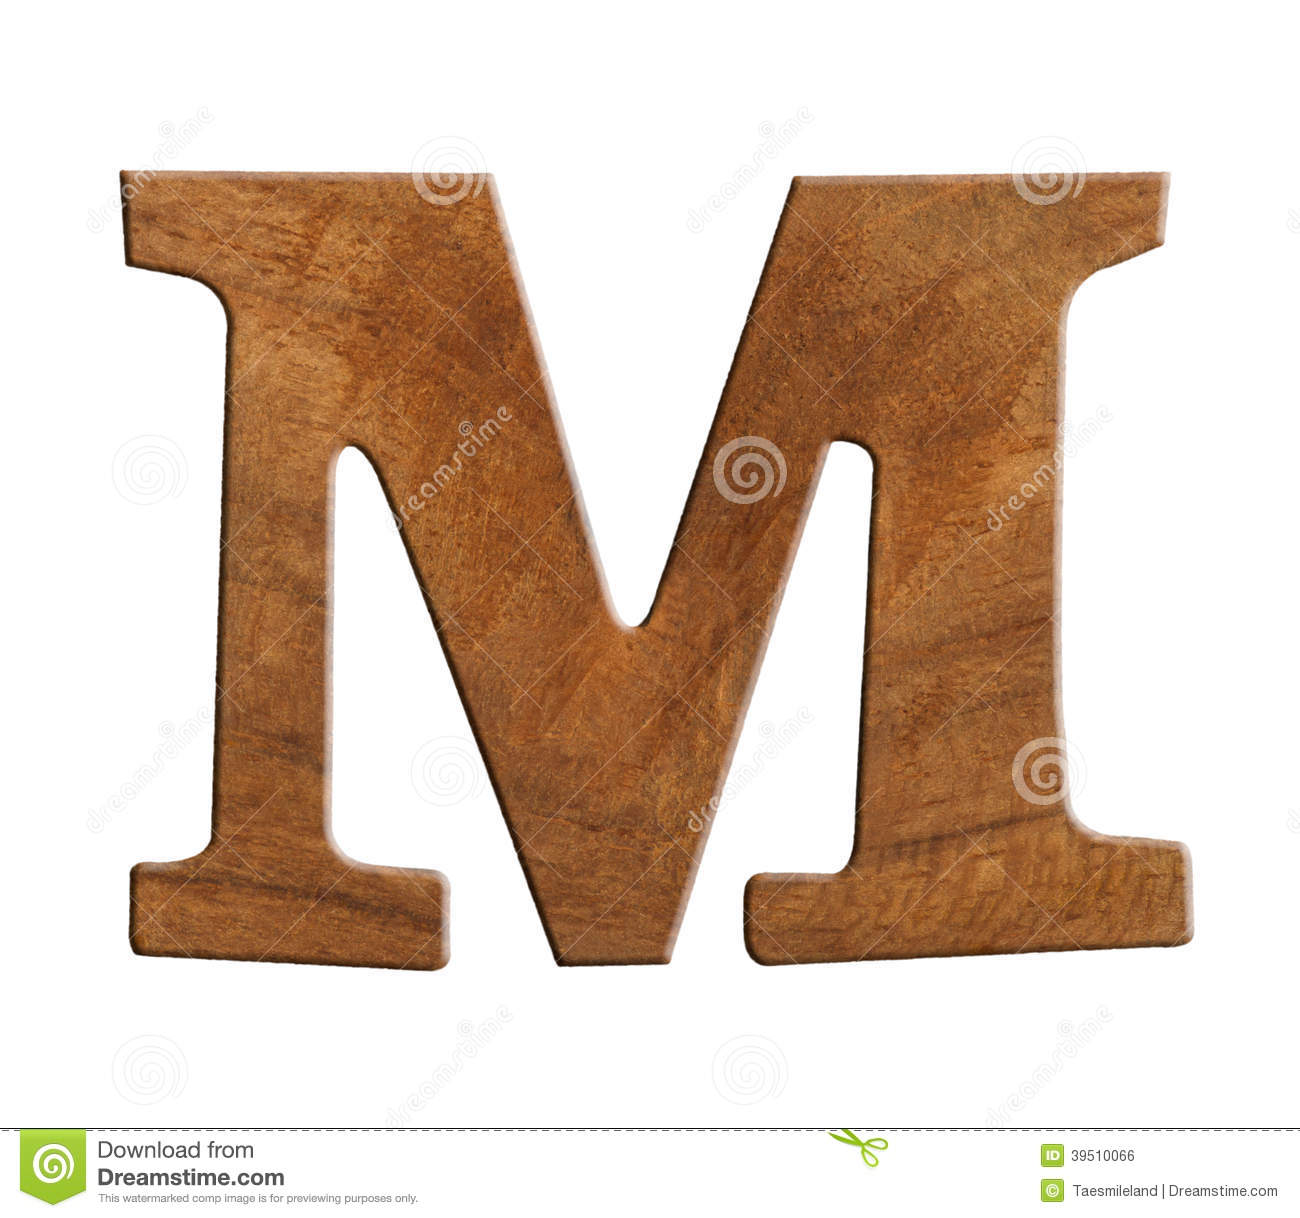 Alphabet made from wood